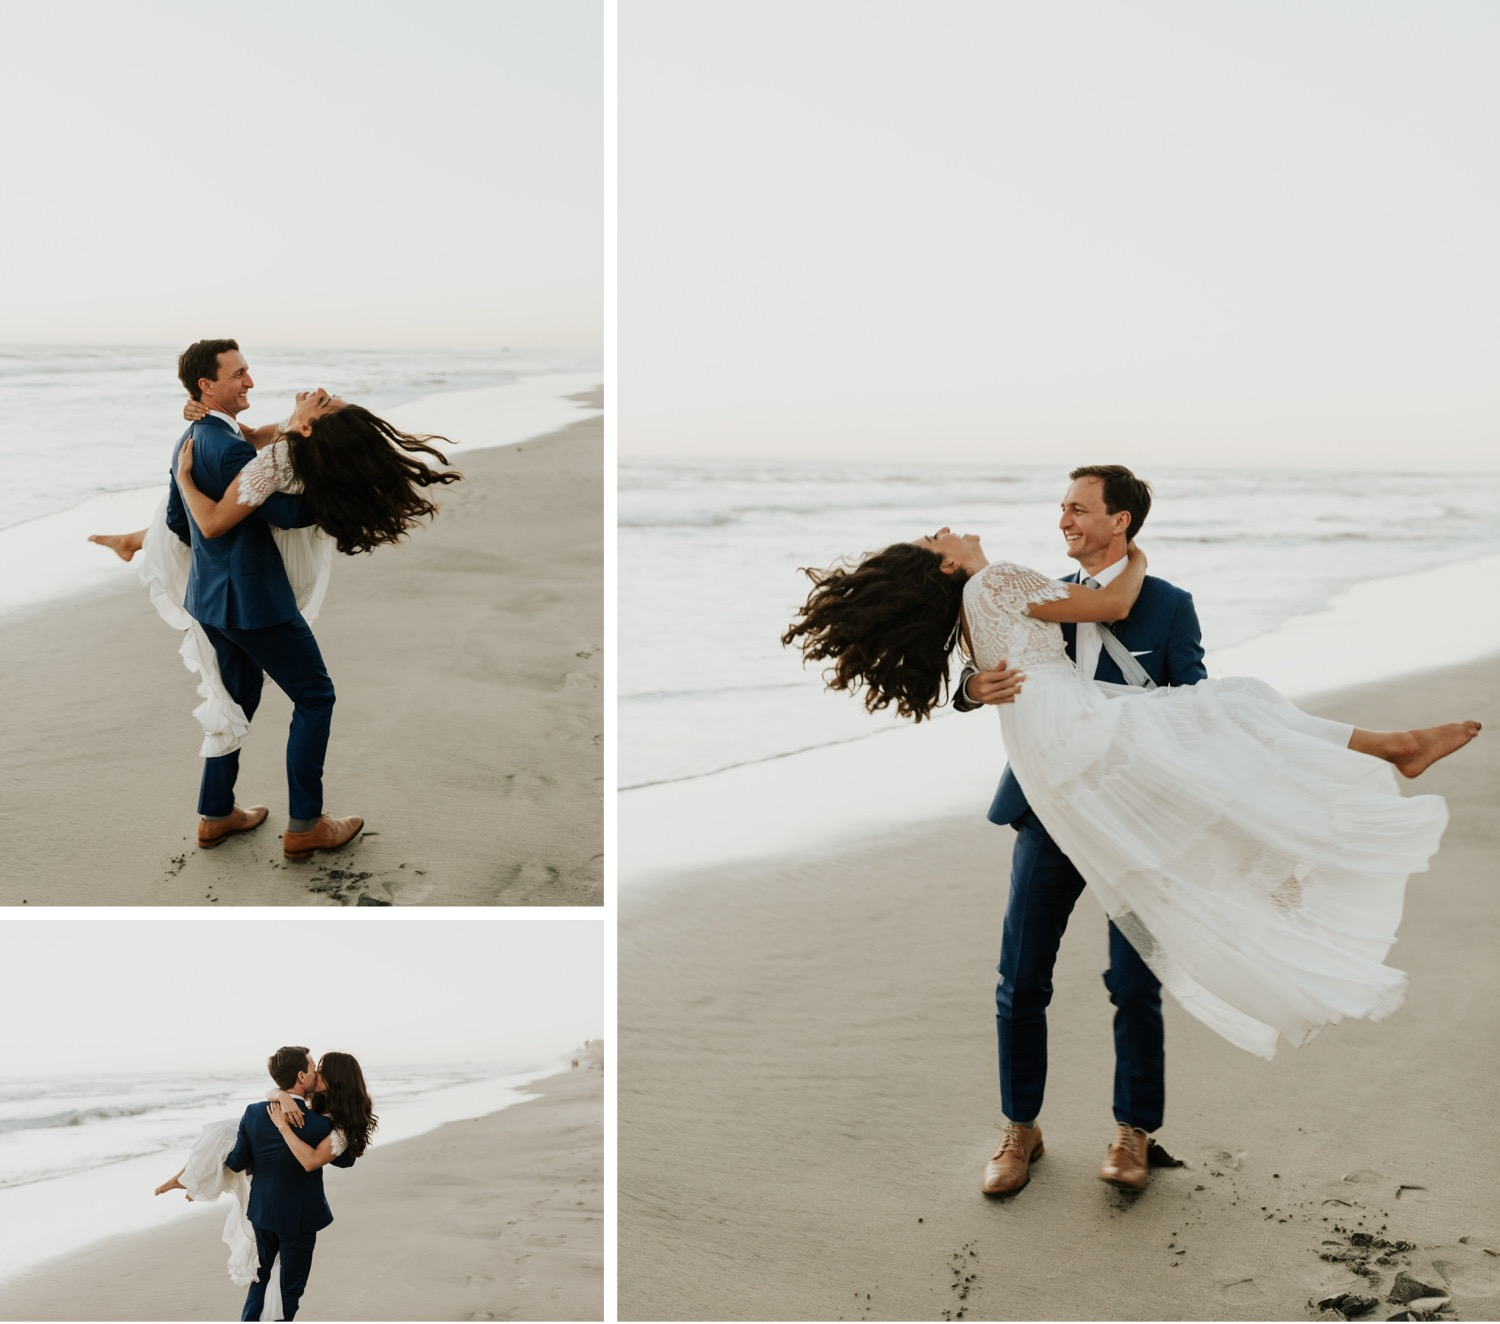 59_St-Malo-Oceanside-California-Wedding-Emily-Magers-Photography101_St-Malo-Oceanside-California-Wedding-Emily-Magers-Photography102_St-Malo-Oceanside-California-Wedding-Emily-Magers-Photography99.jpg